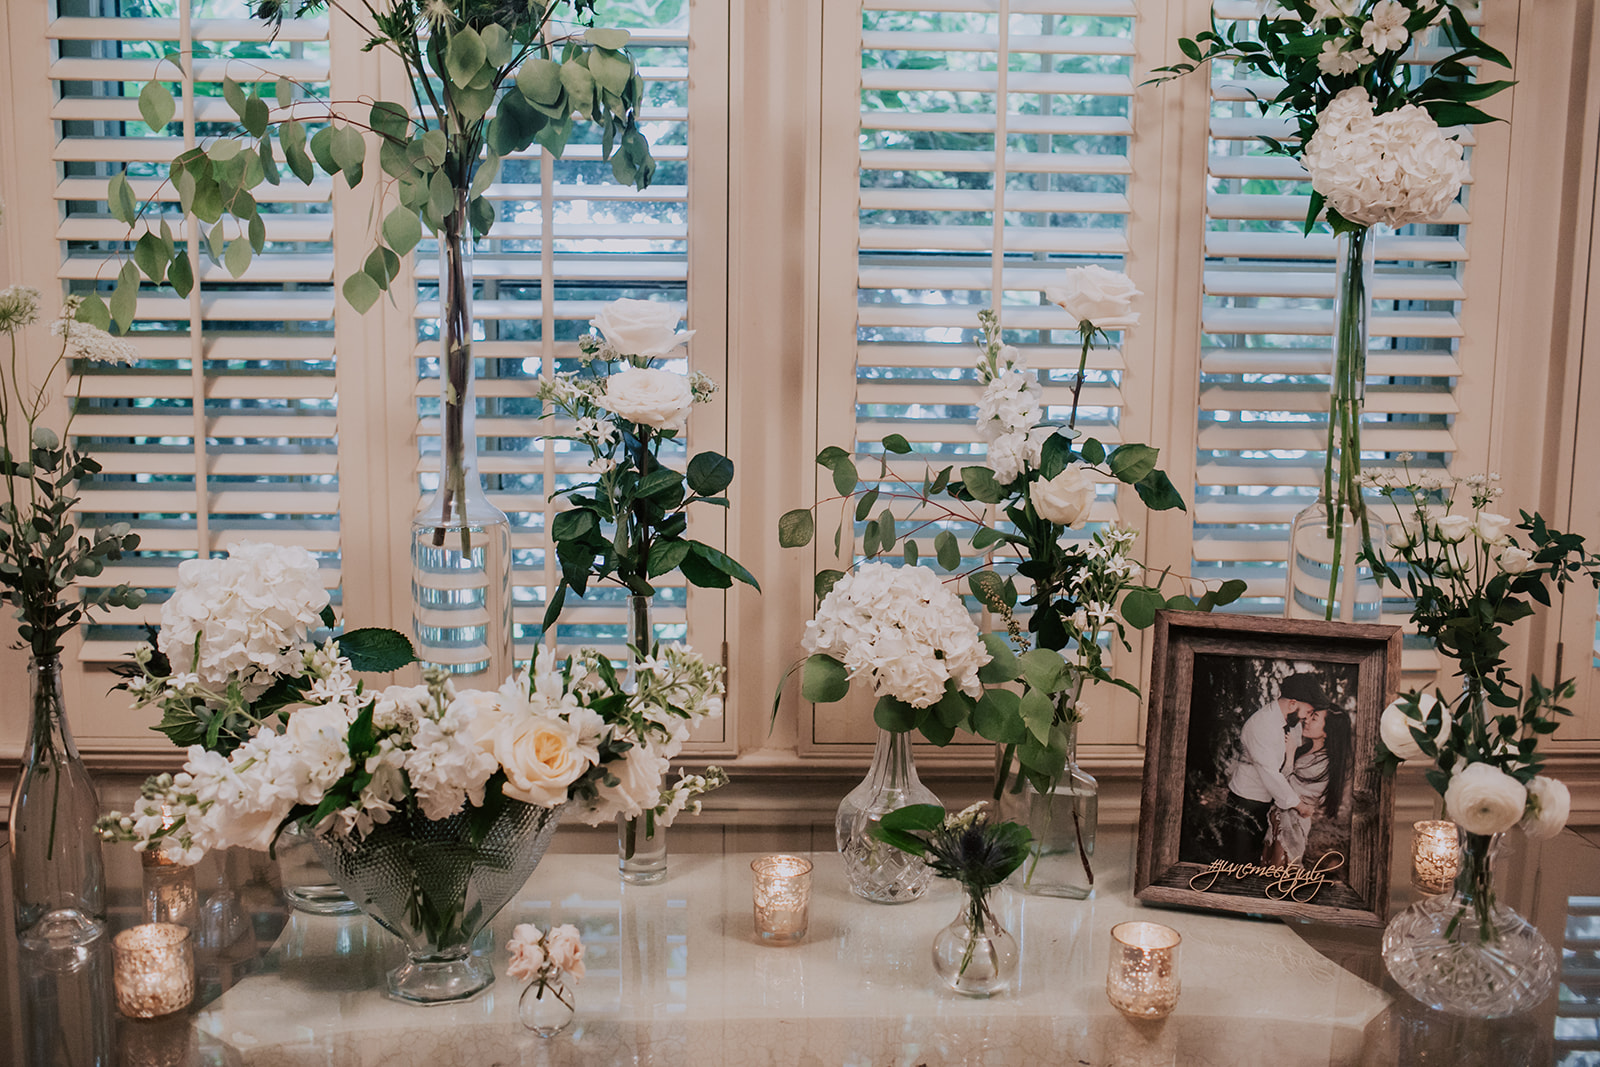 Wedding table decor: Summer Soiree at Cedarwood Weddings featured on Nashville Bride Guide